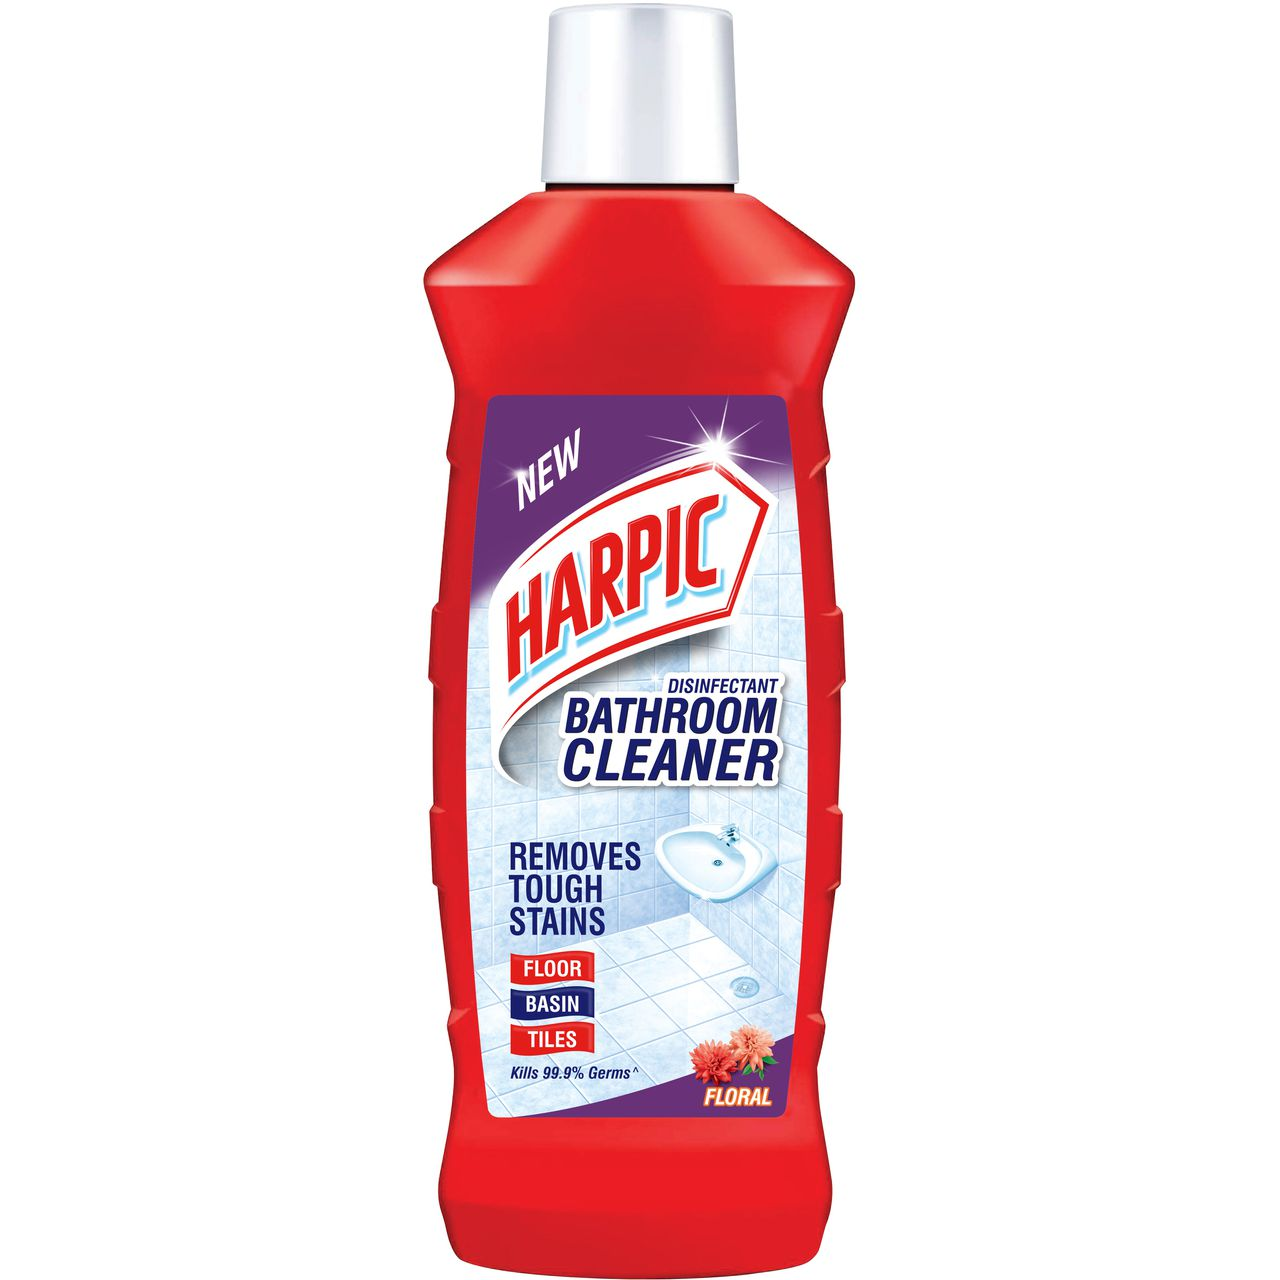 Bathroom Cleaner | Harpic Bathroom Cleaner